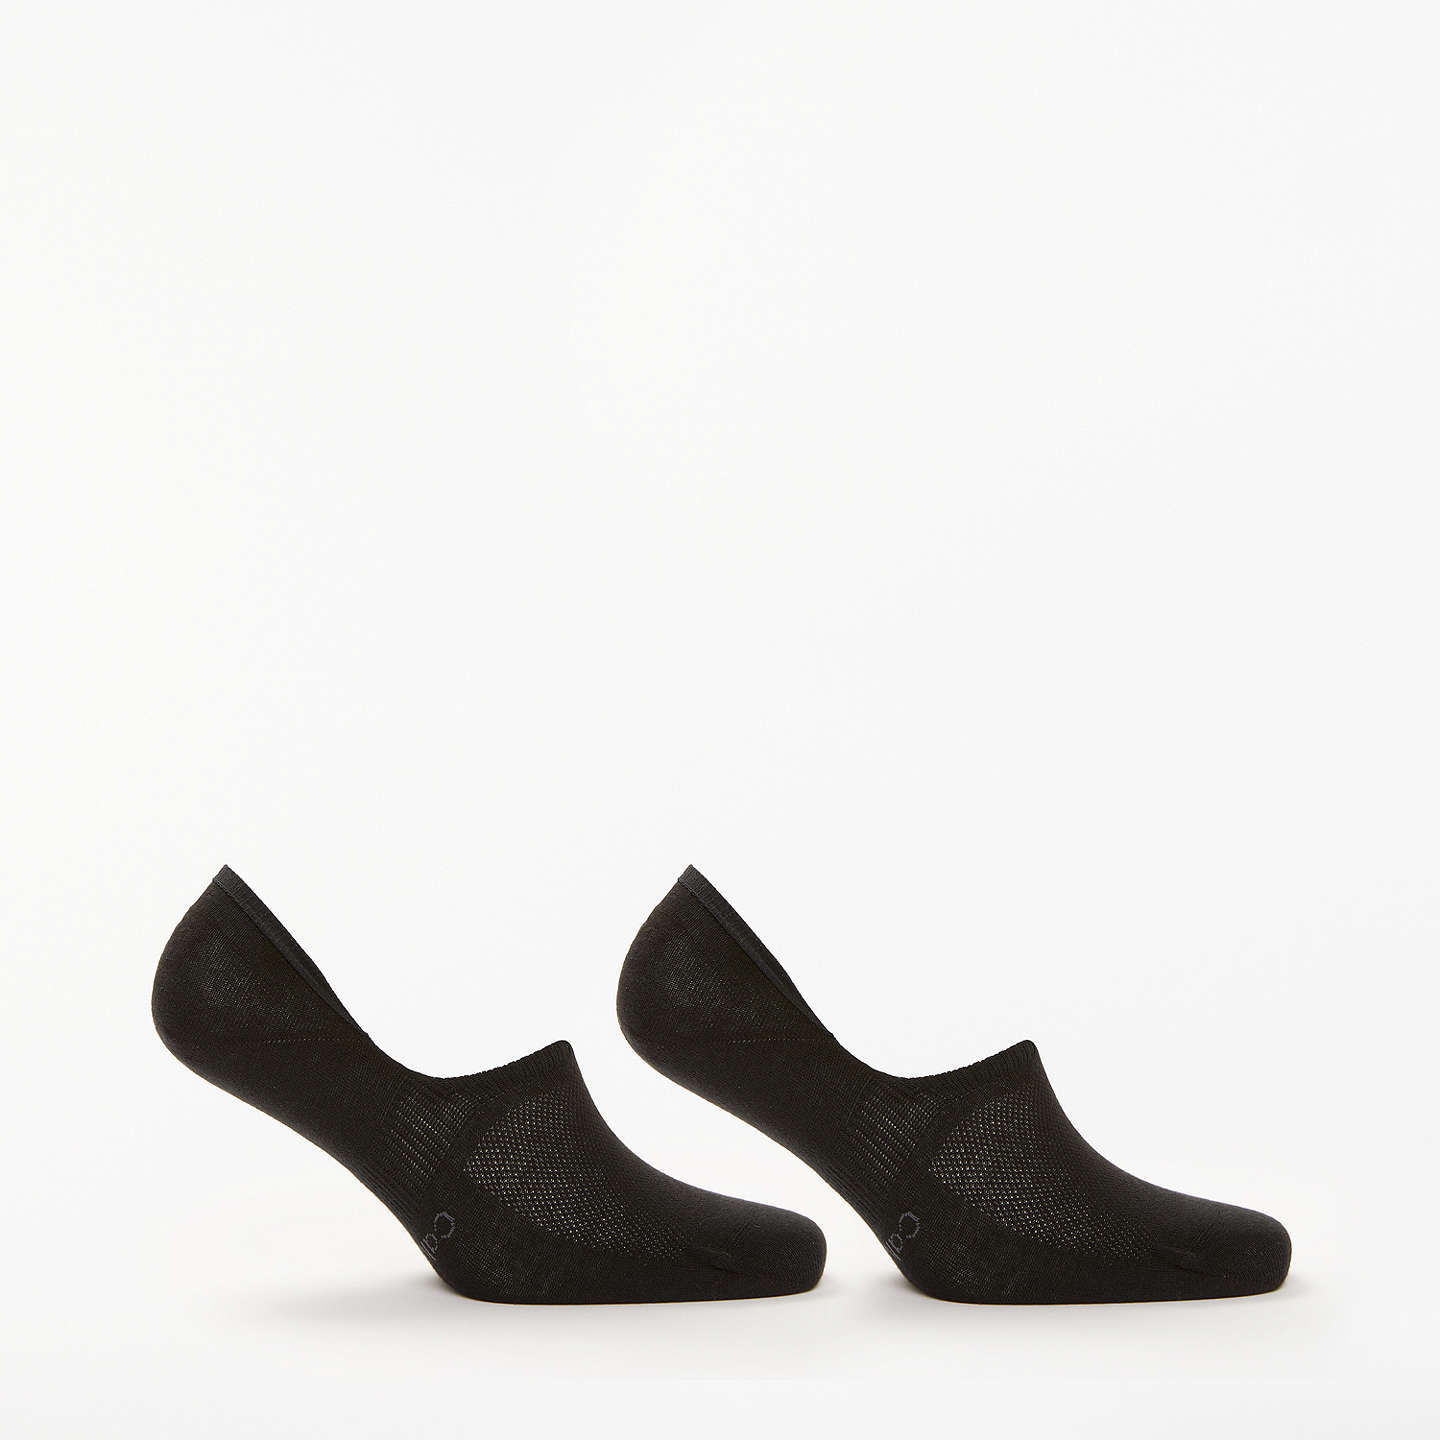 BuyCalvin Klein Cotton Shoe Liners, Pack of 2, One Size, Black Online at johnlewis.com